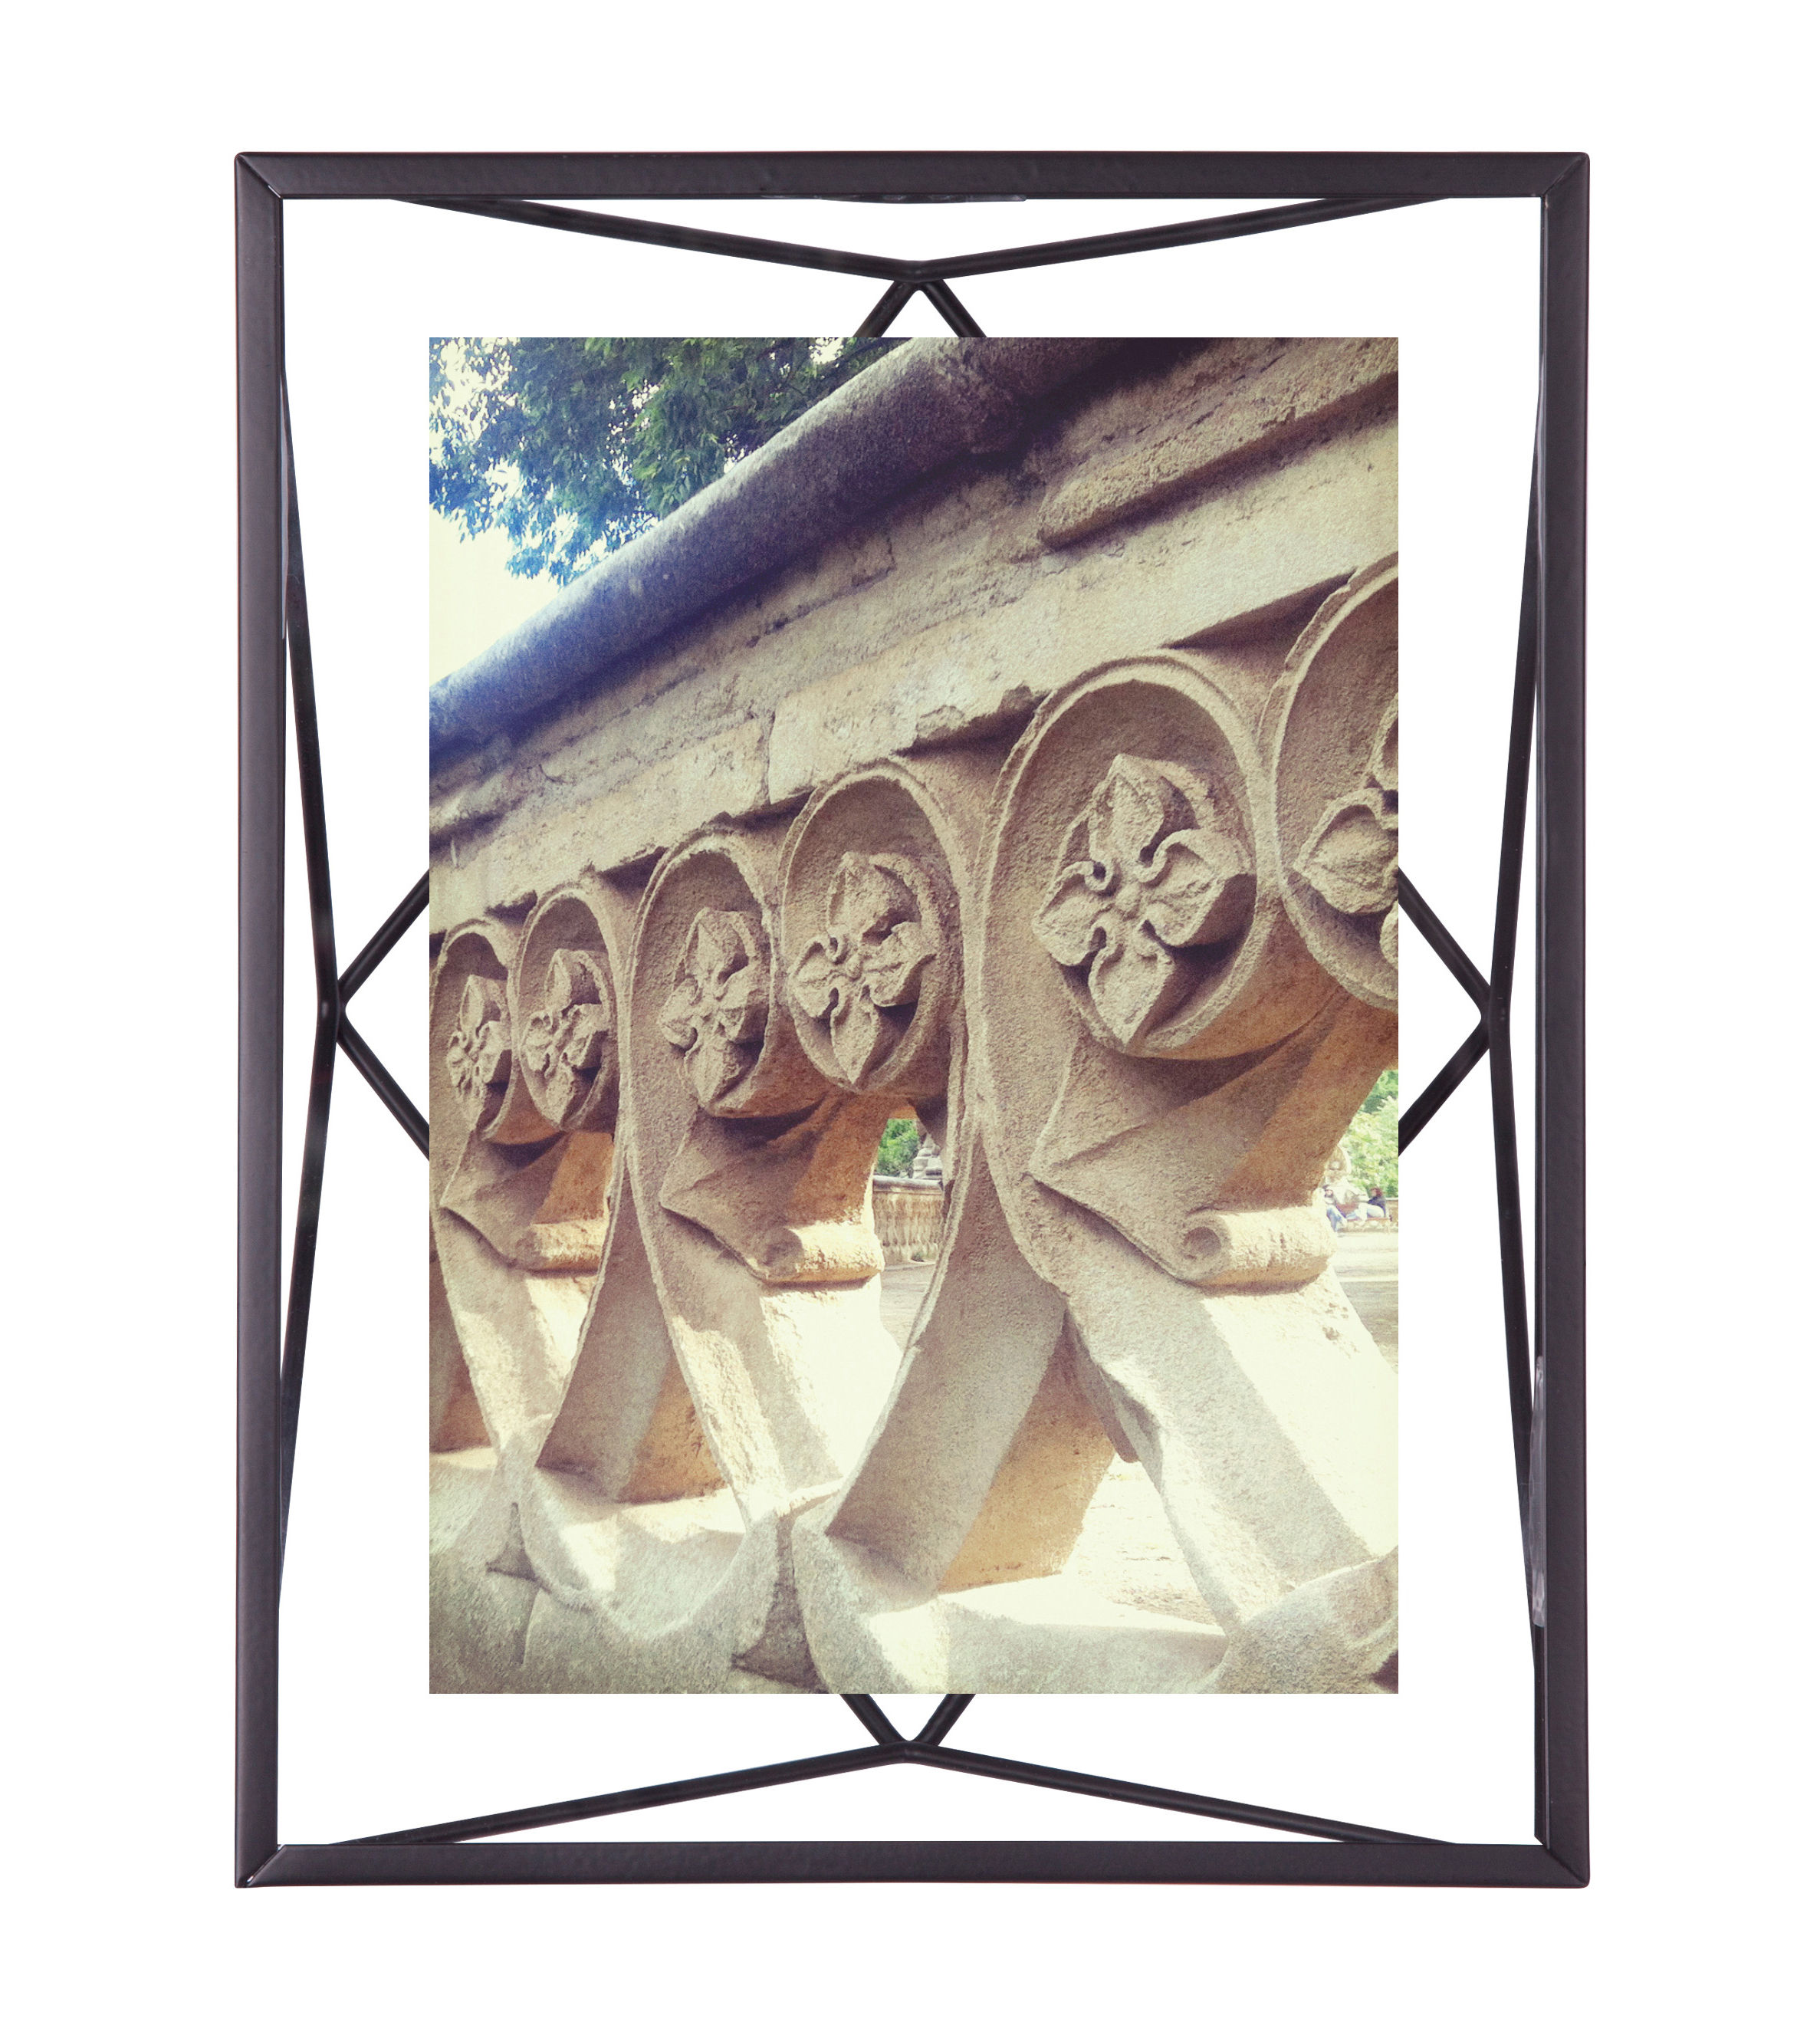 Decoration - Home Accessories - Prisma Photo frame - / Photo 13 x 18 cm - to stand up or hang by Umbra - 13 x 18 cm / Black - Glass, Metal